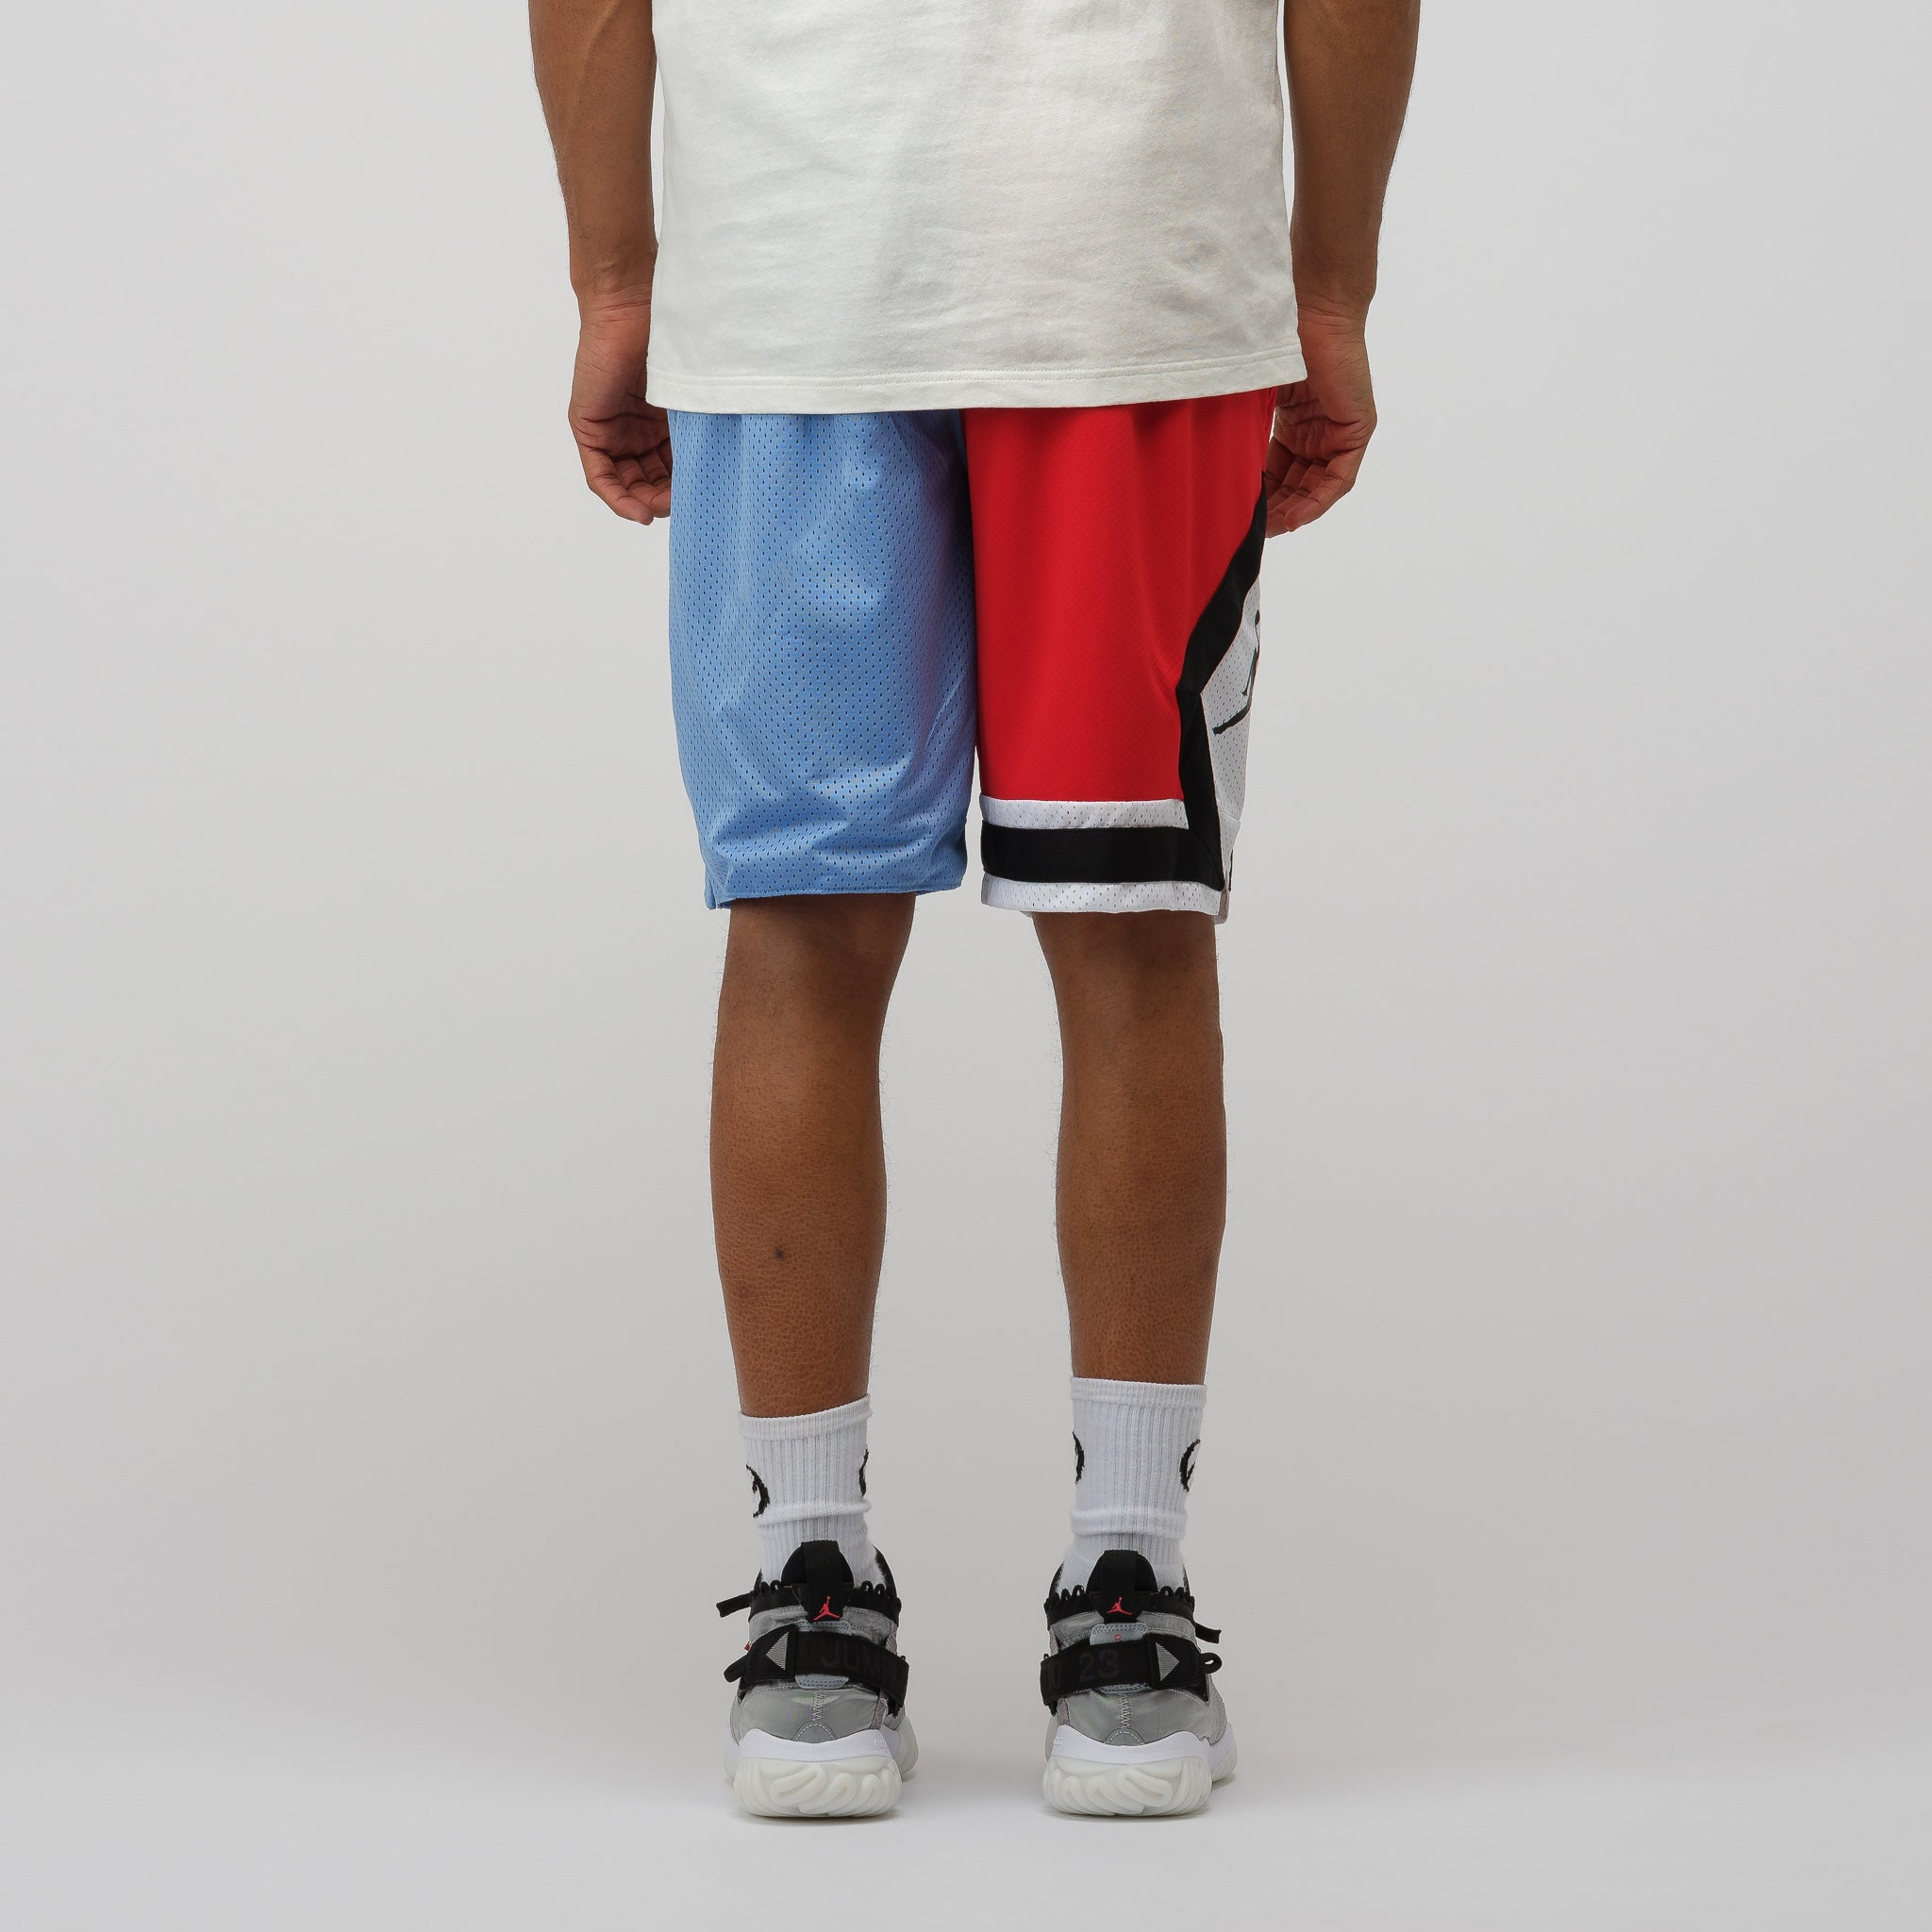 a2f2bcb2a5e710 Jordan DNA Distorted Shorts in Blue Red